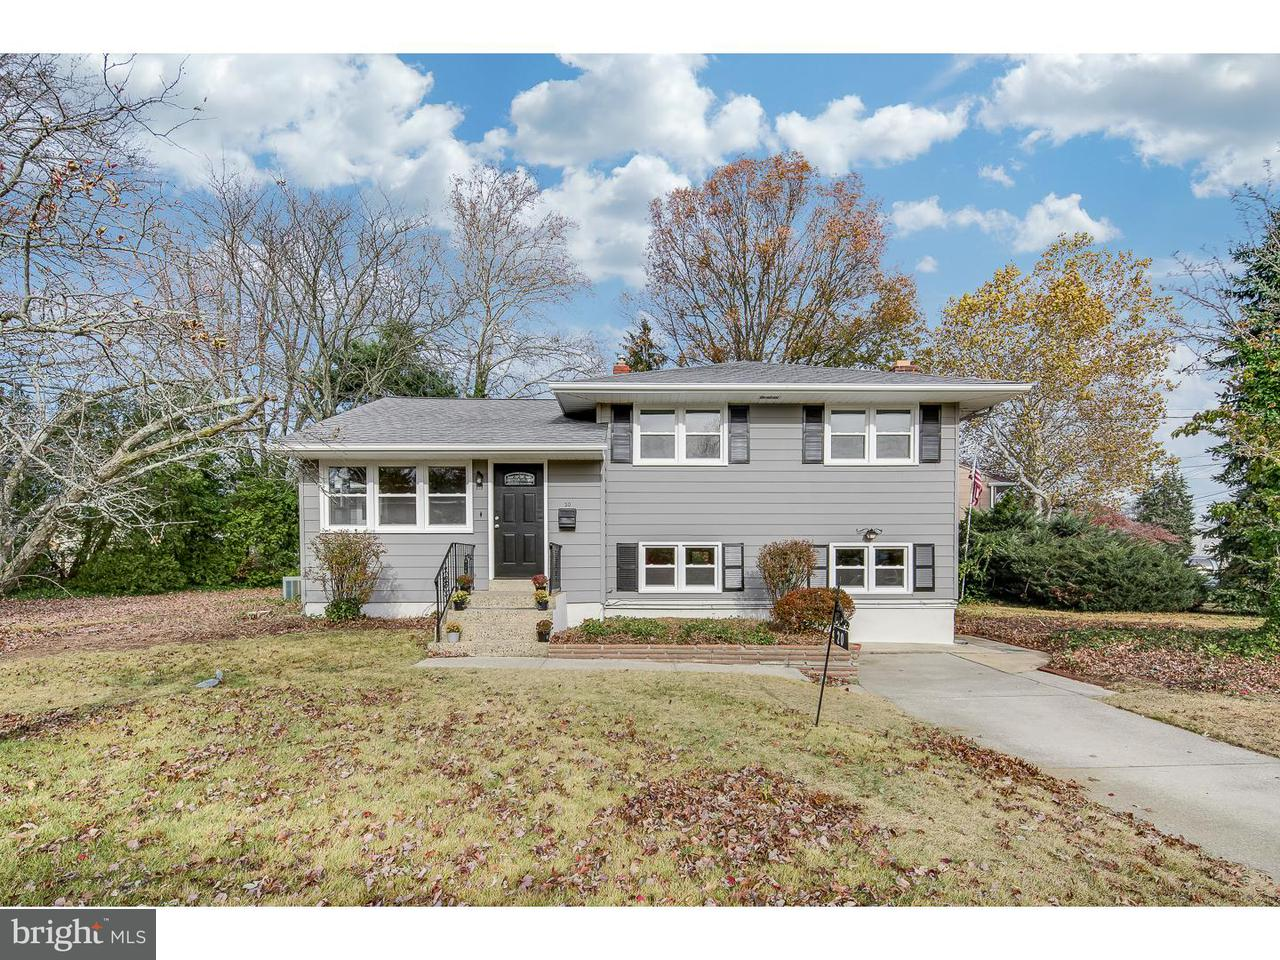 Single Family Home for Sale at 20 TRINITY Place Barrington, New Jersey 08007 United States